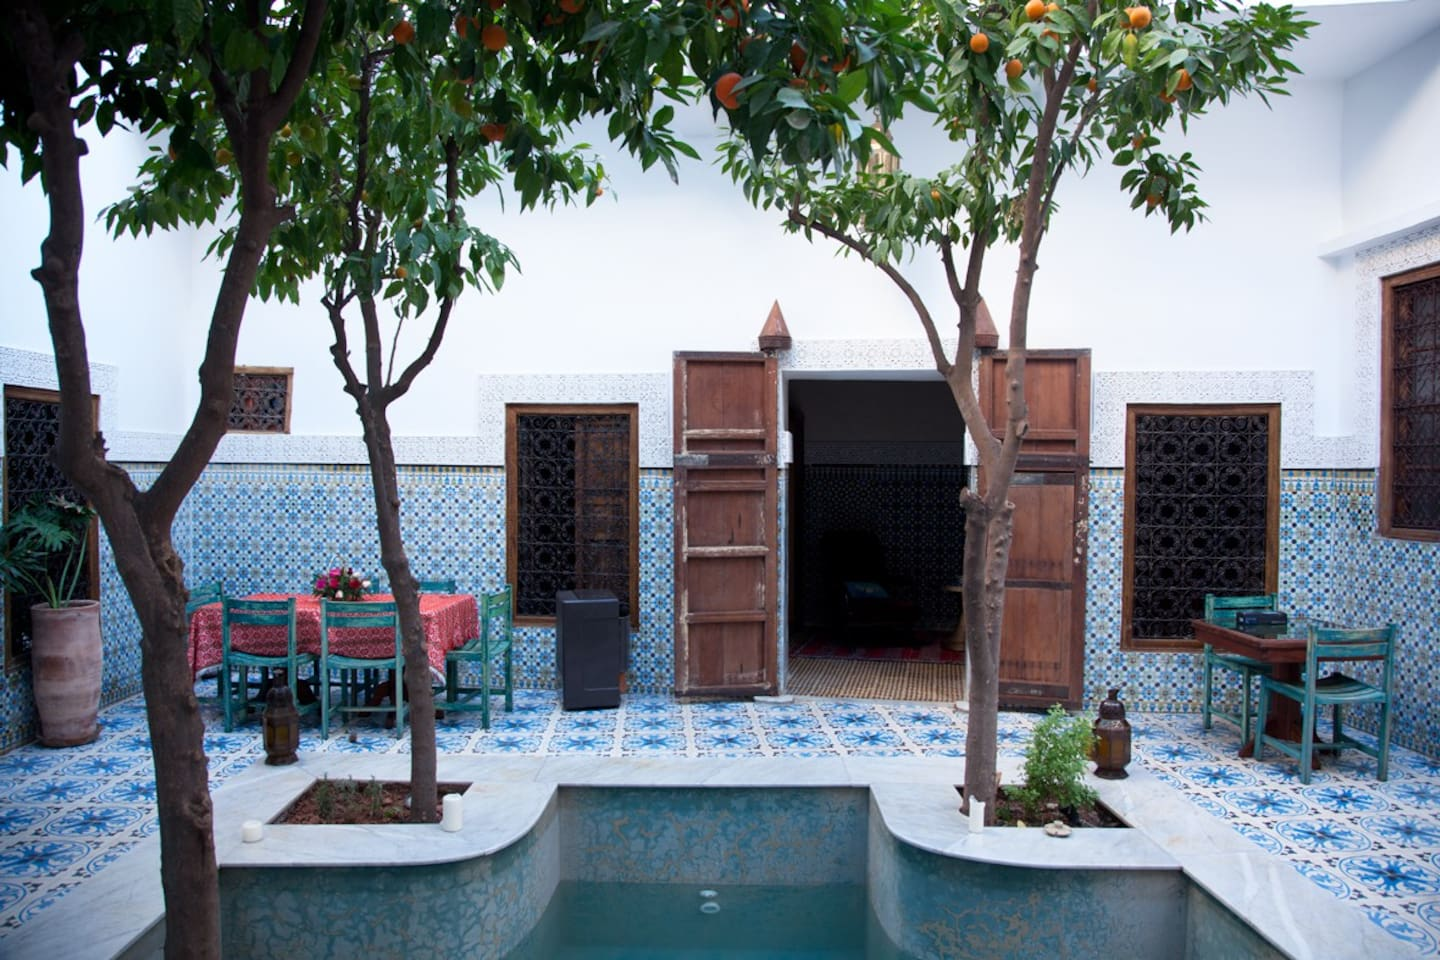 Riad main courtyard